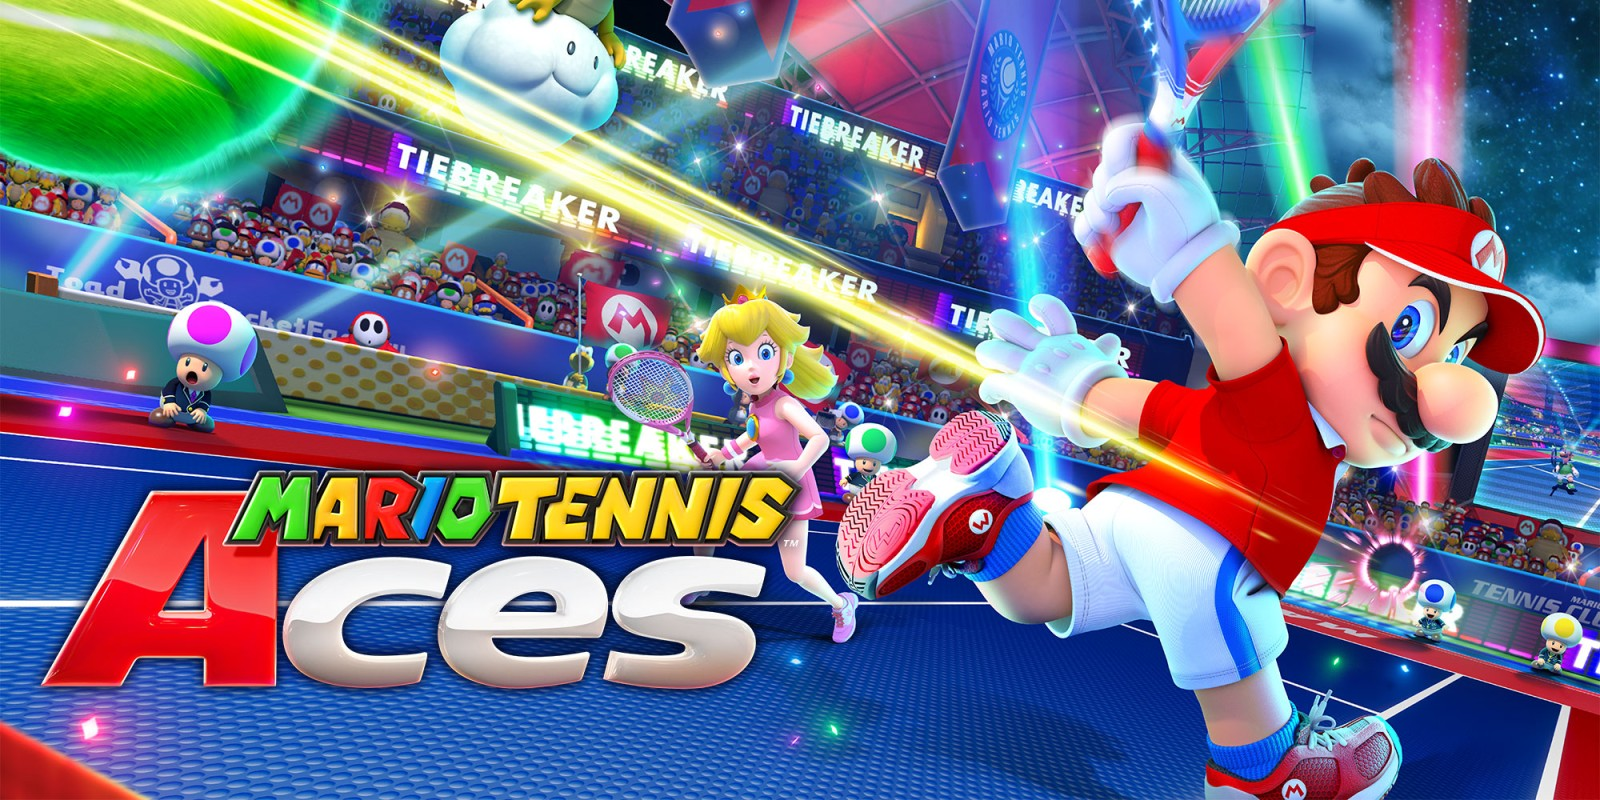 Last Game You Finished And Your Four-ghts H2x1_NSwitch_MarioTennisAces_image1600w